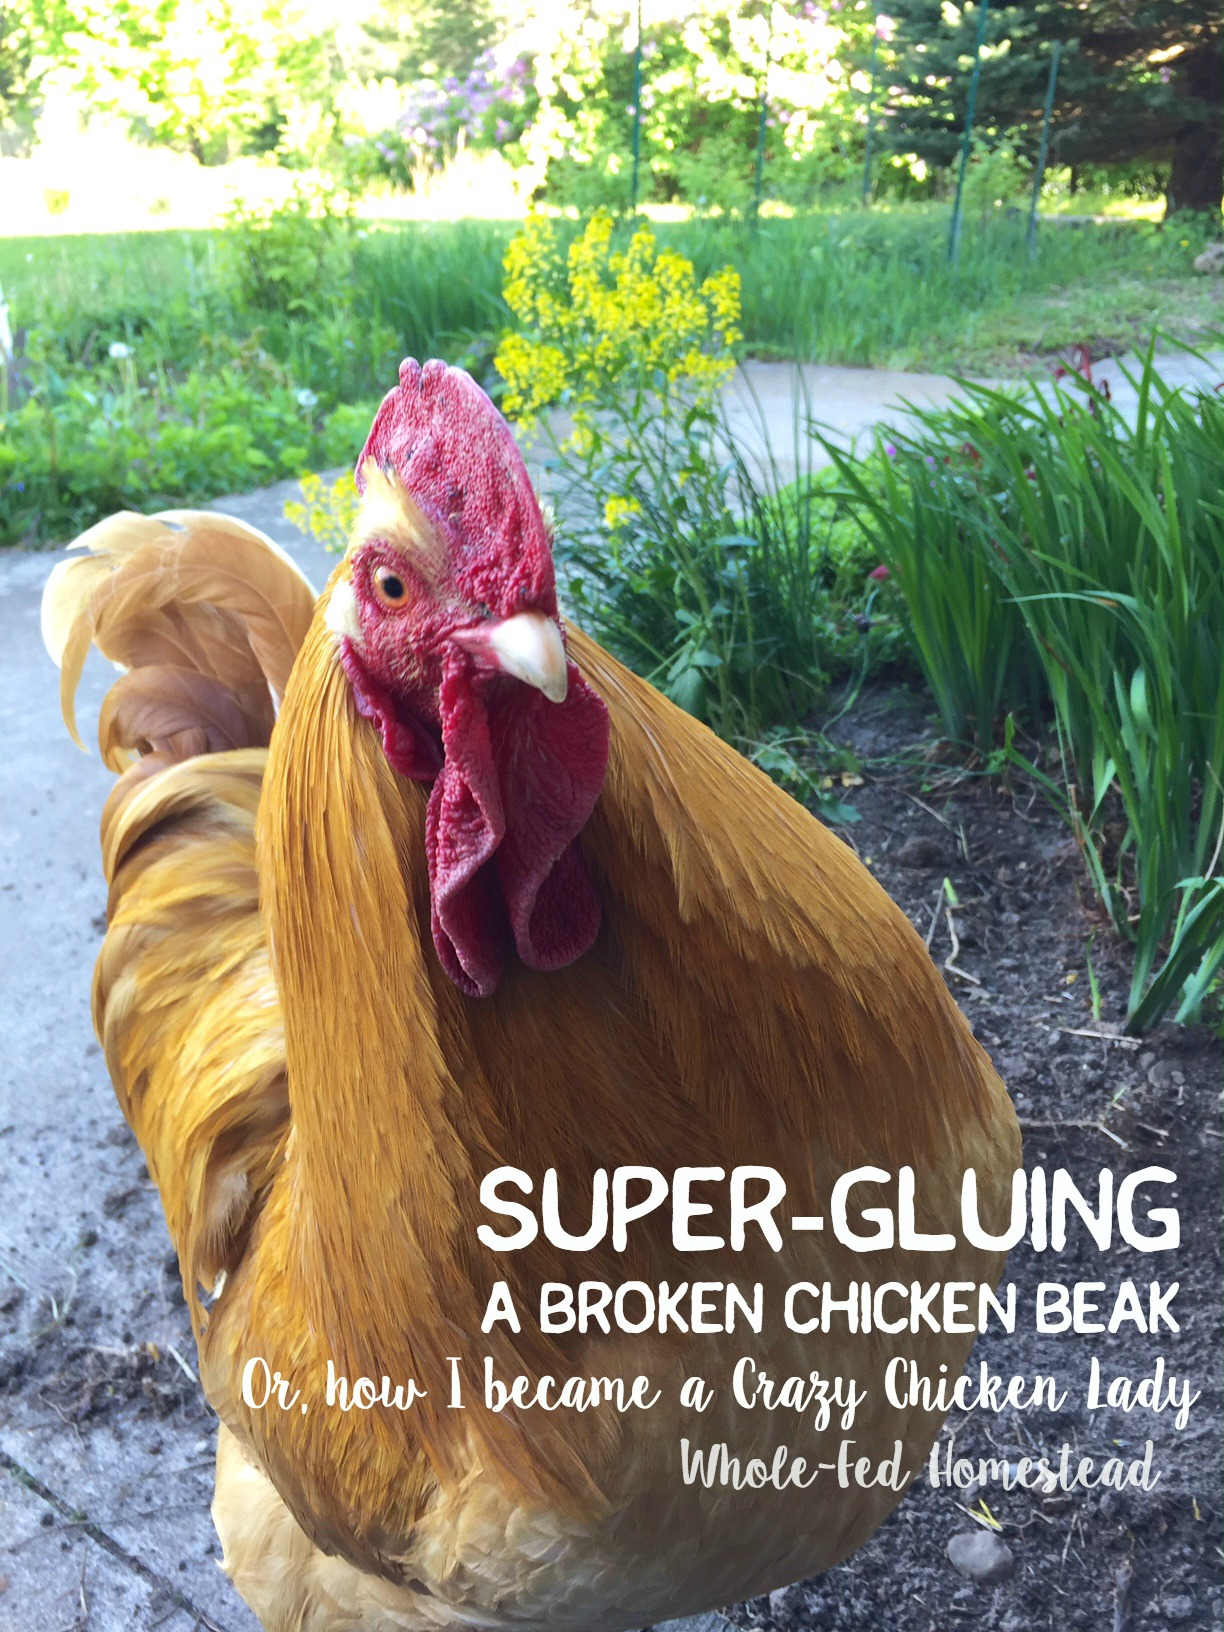 Super Gluing a Broken Chicken Beak, or...How I Became a Crazy Chicken Lady | Whole-Fed Homestead